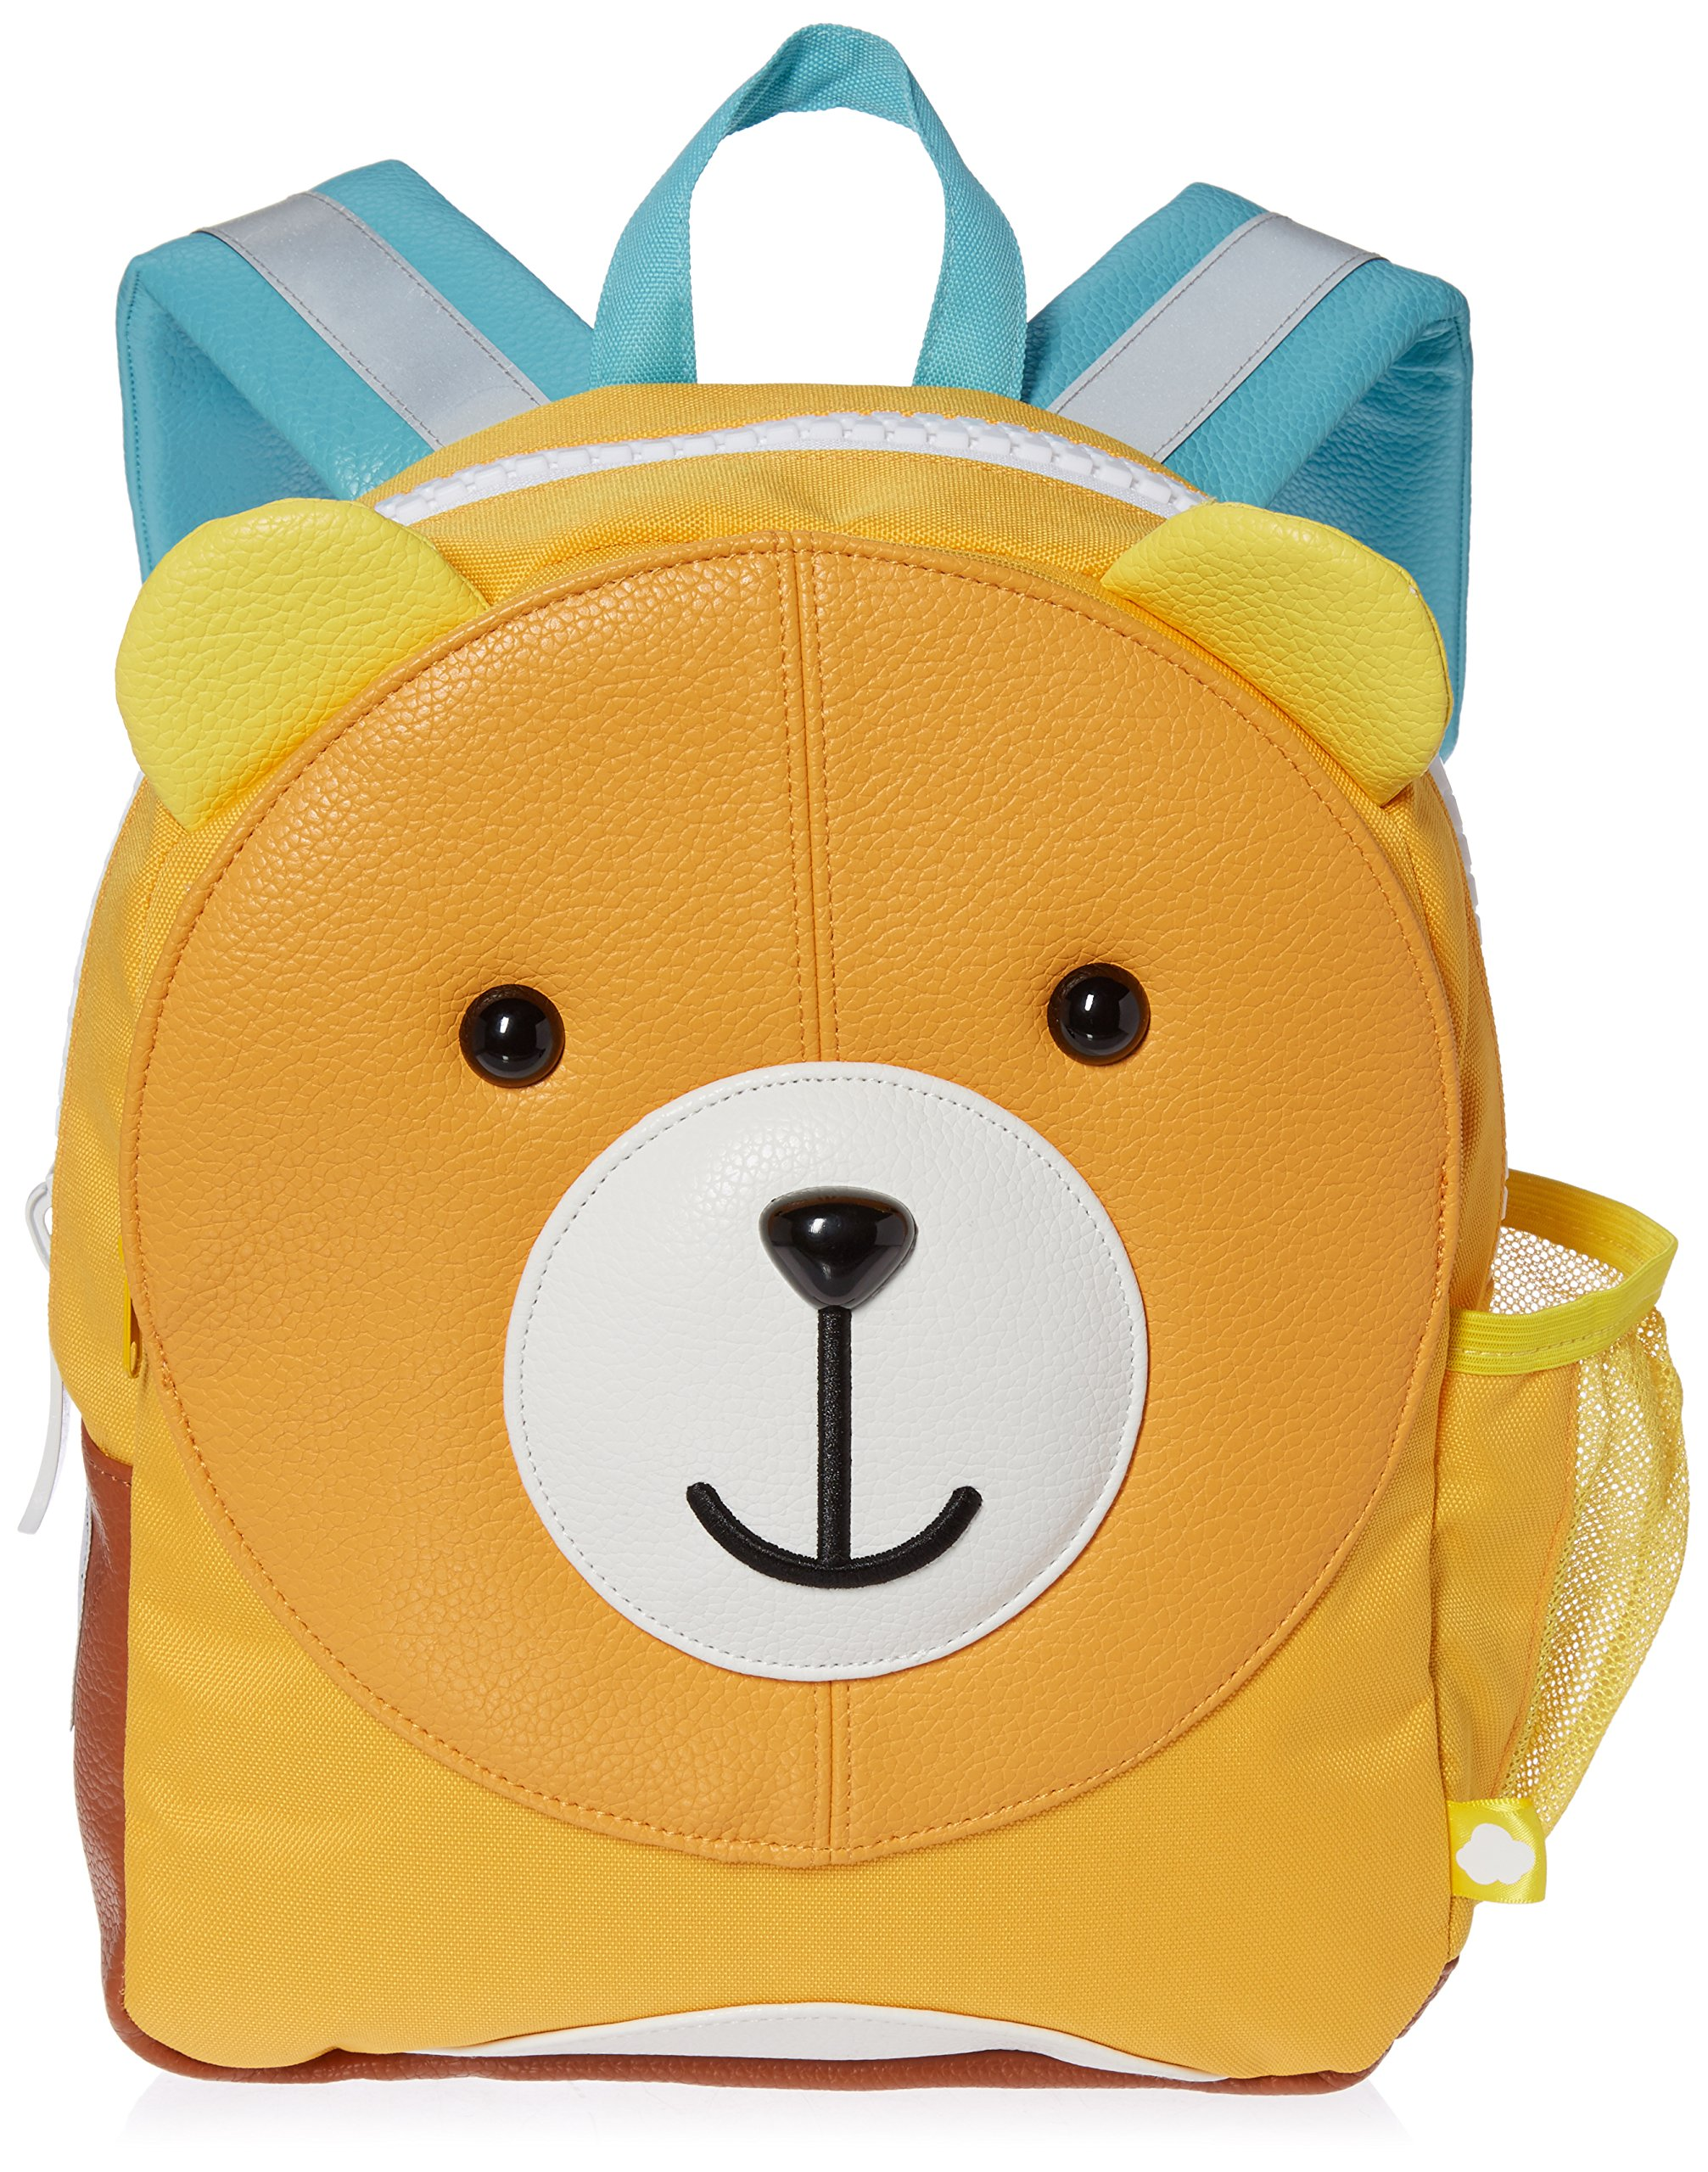 Puku Pals Premium Bear Kids Brown Backpack Bag for Boys and Girls